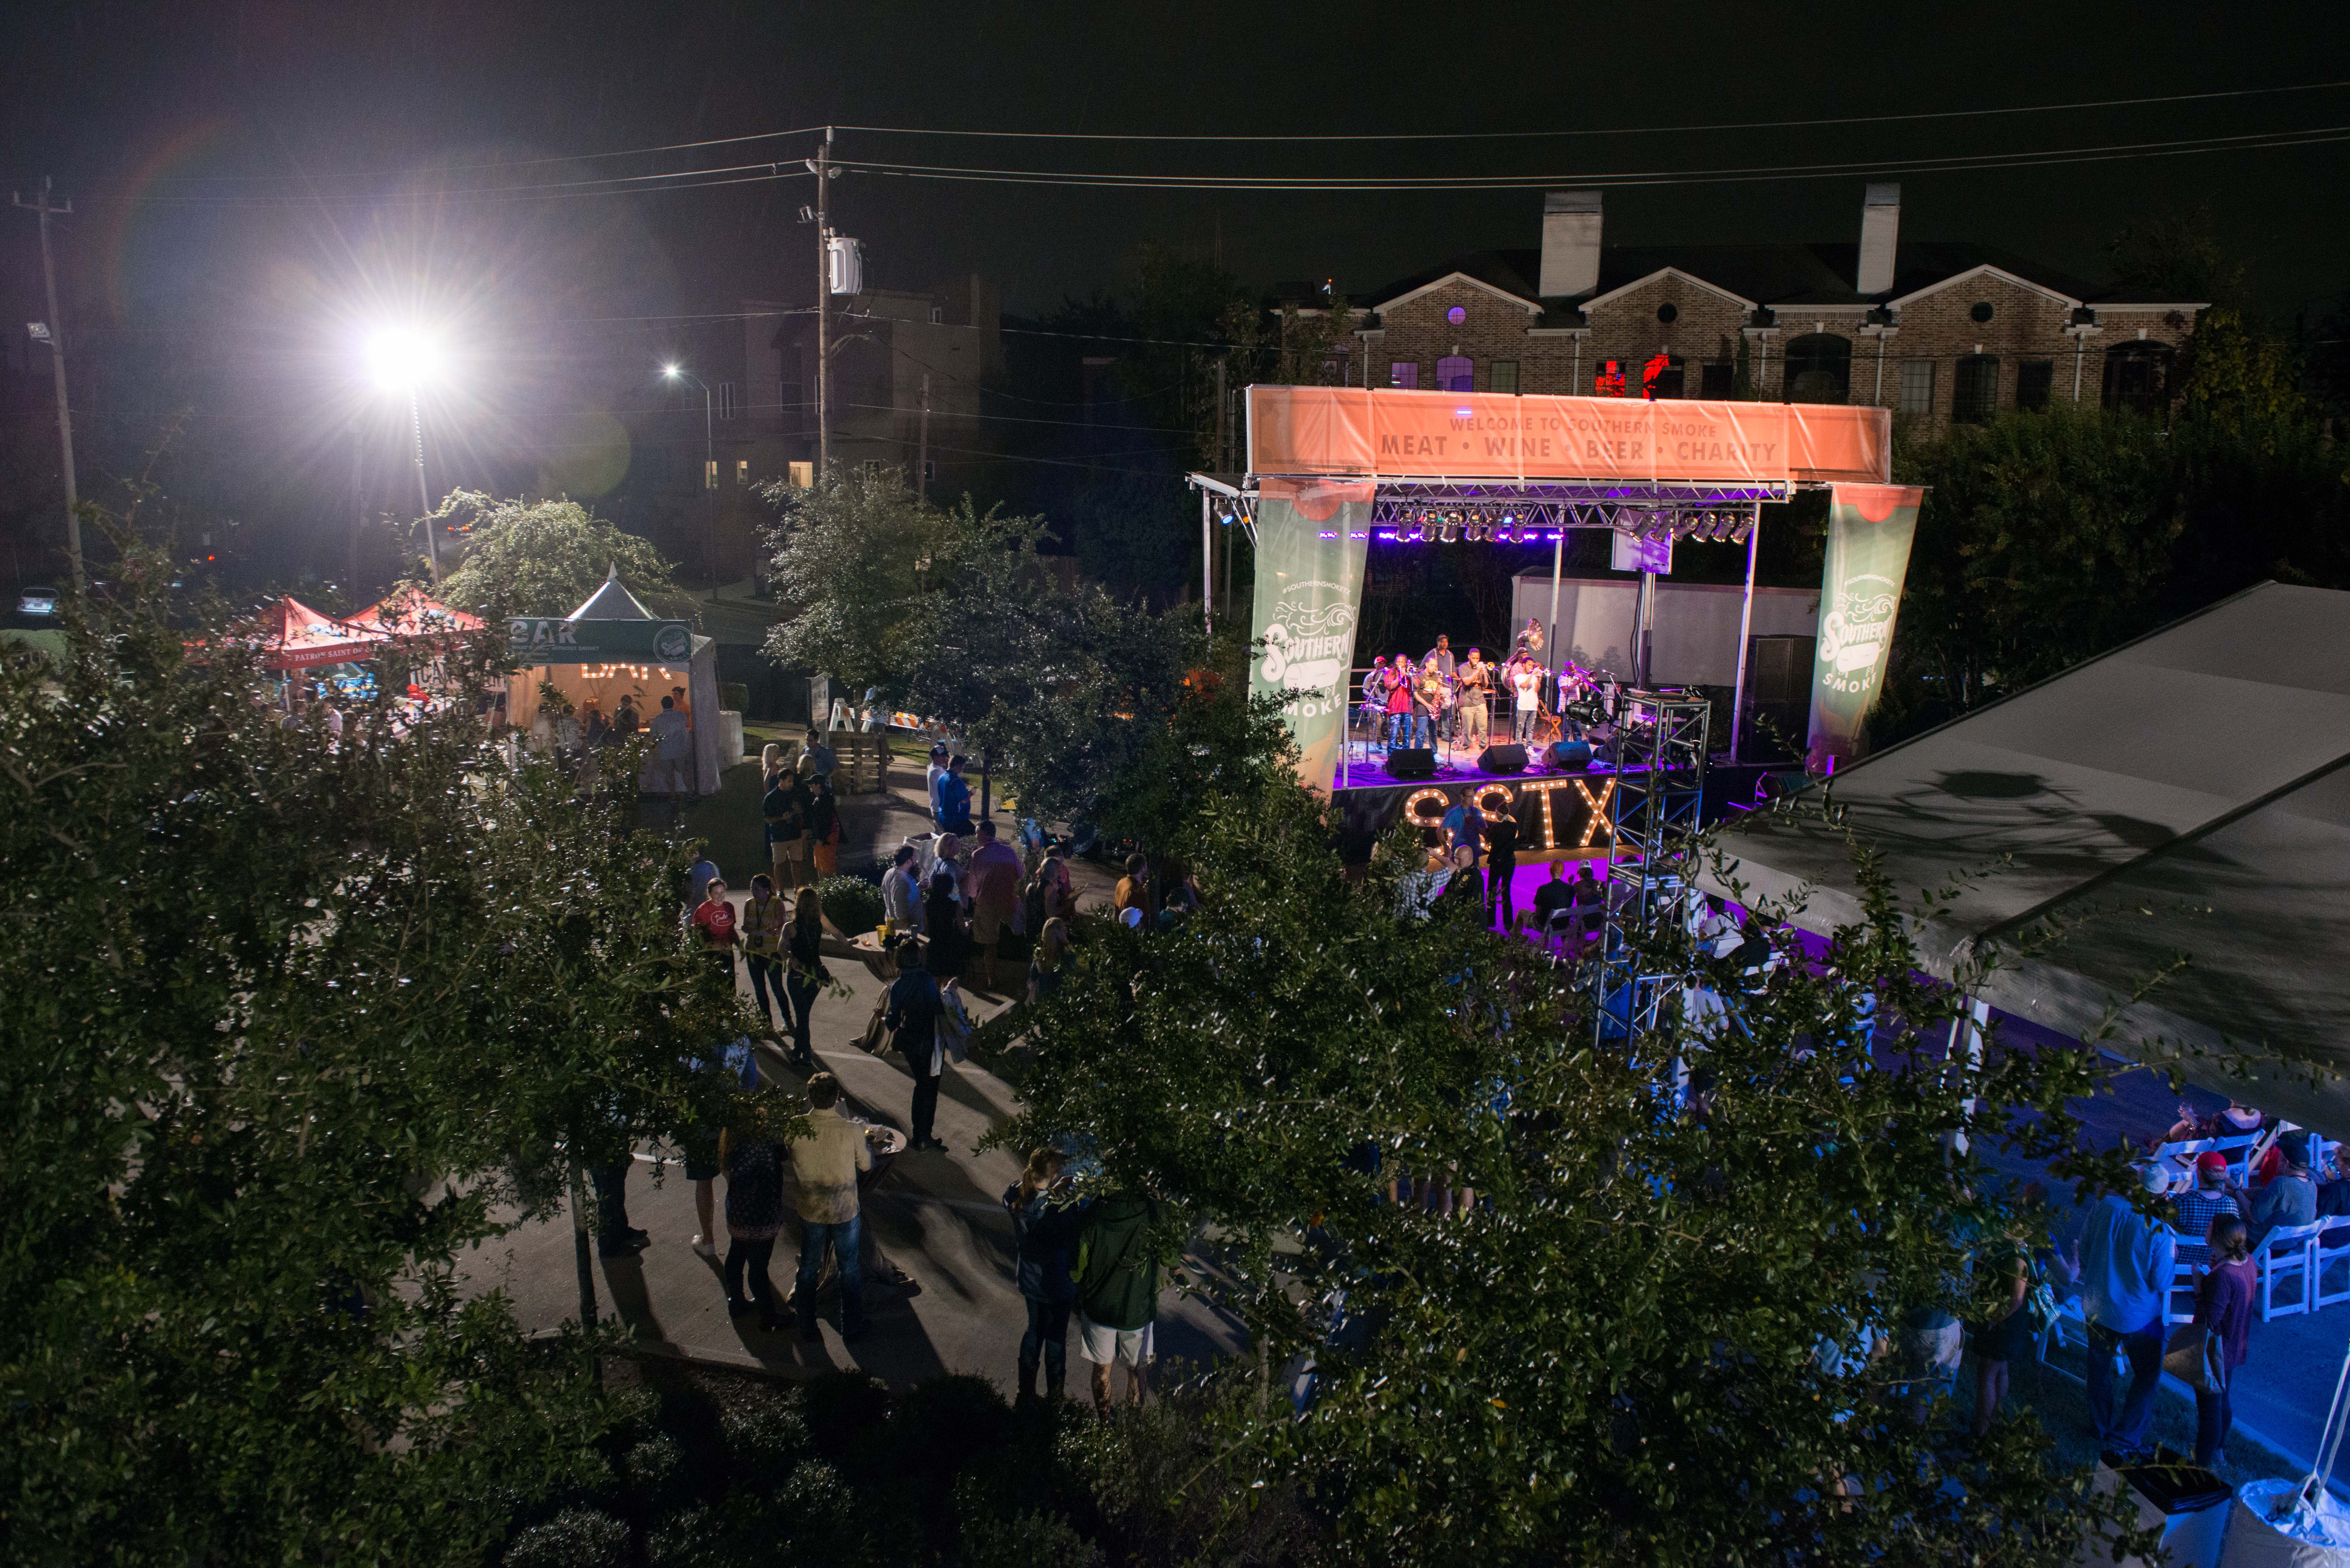 """<div class=""""meta image-caption""""><div class=""""origin-logo origin-image ktrk""""><span>KTRK</span></div><span class=""""caption-text"""">The view of the crowd and the stage from the Underbelly roof (Catchlight Photography)</span></div>"""